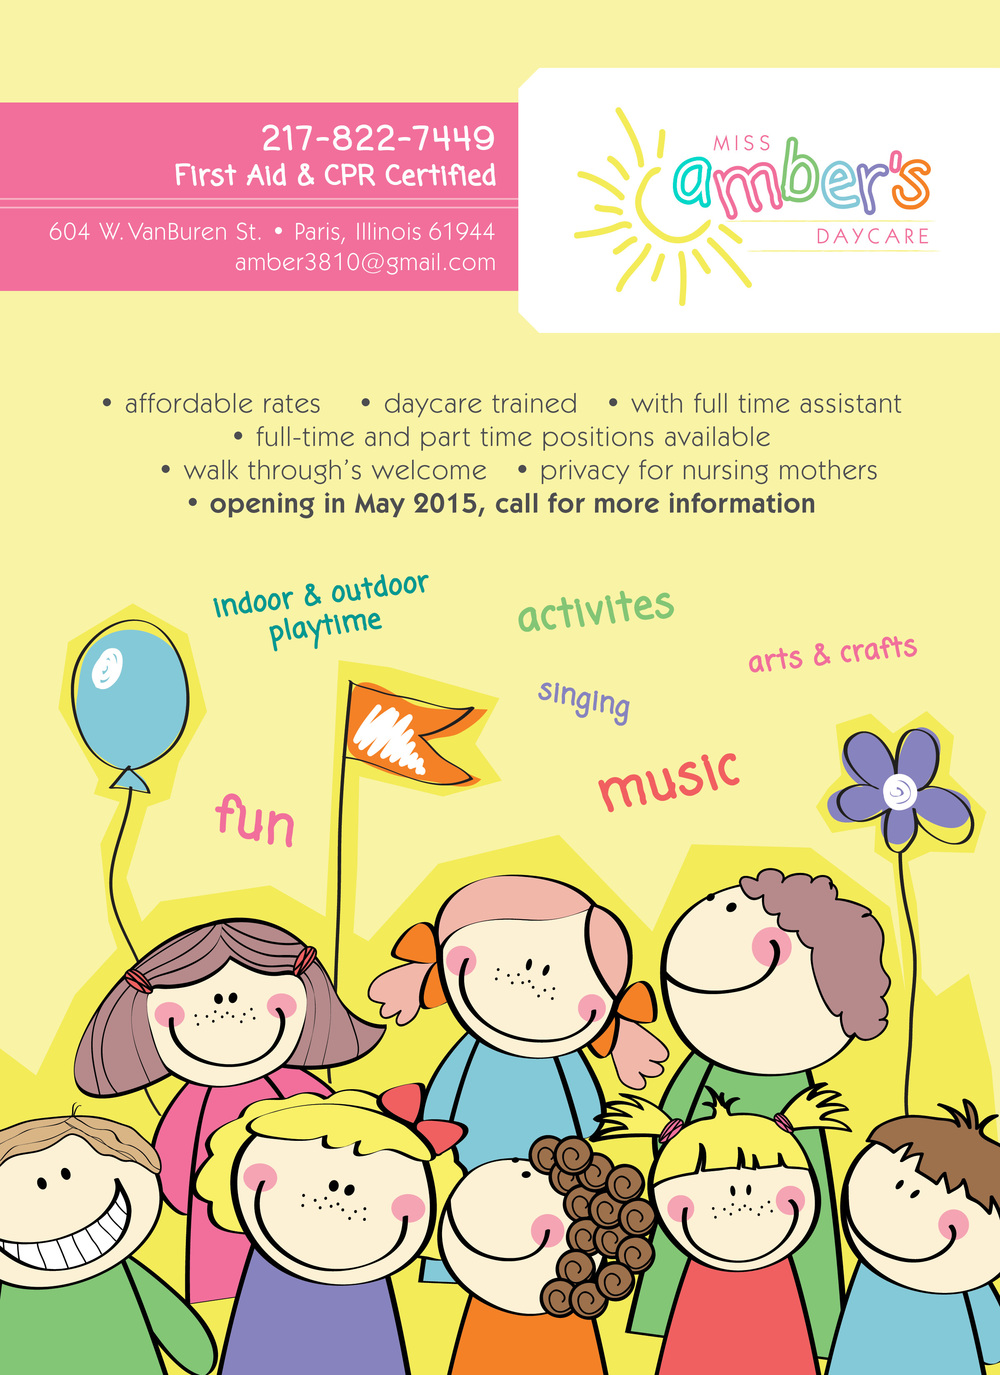 AMB-542 Miss Amber's DayCare FLYER-print in house in photoshop.jpg